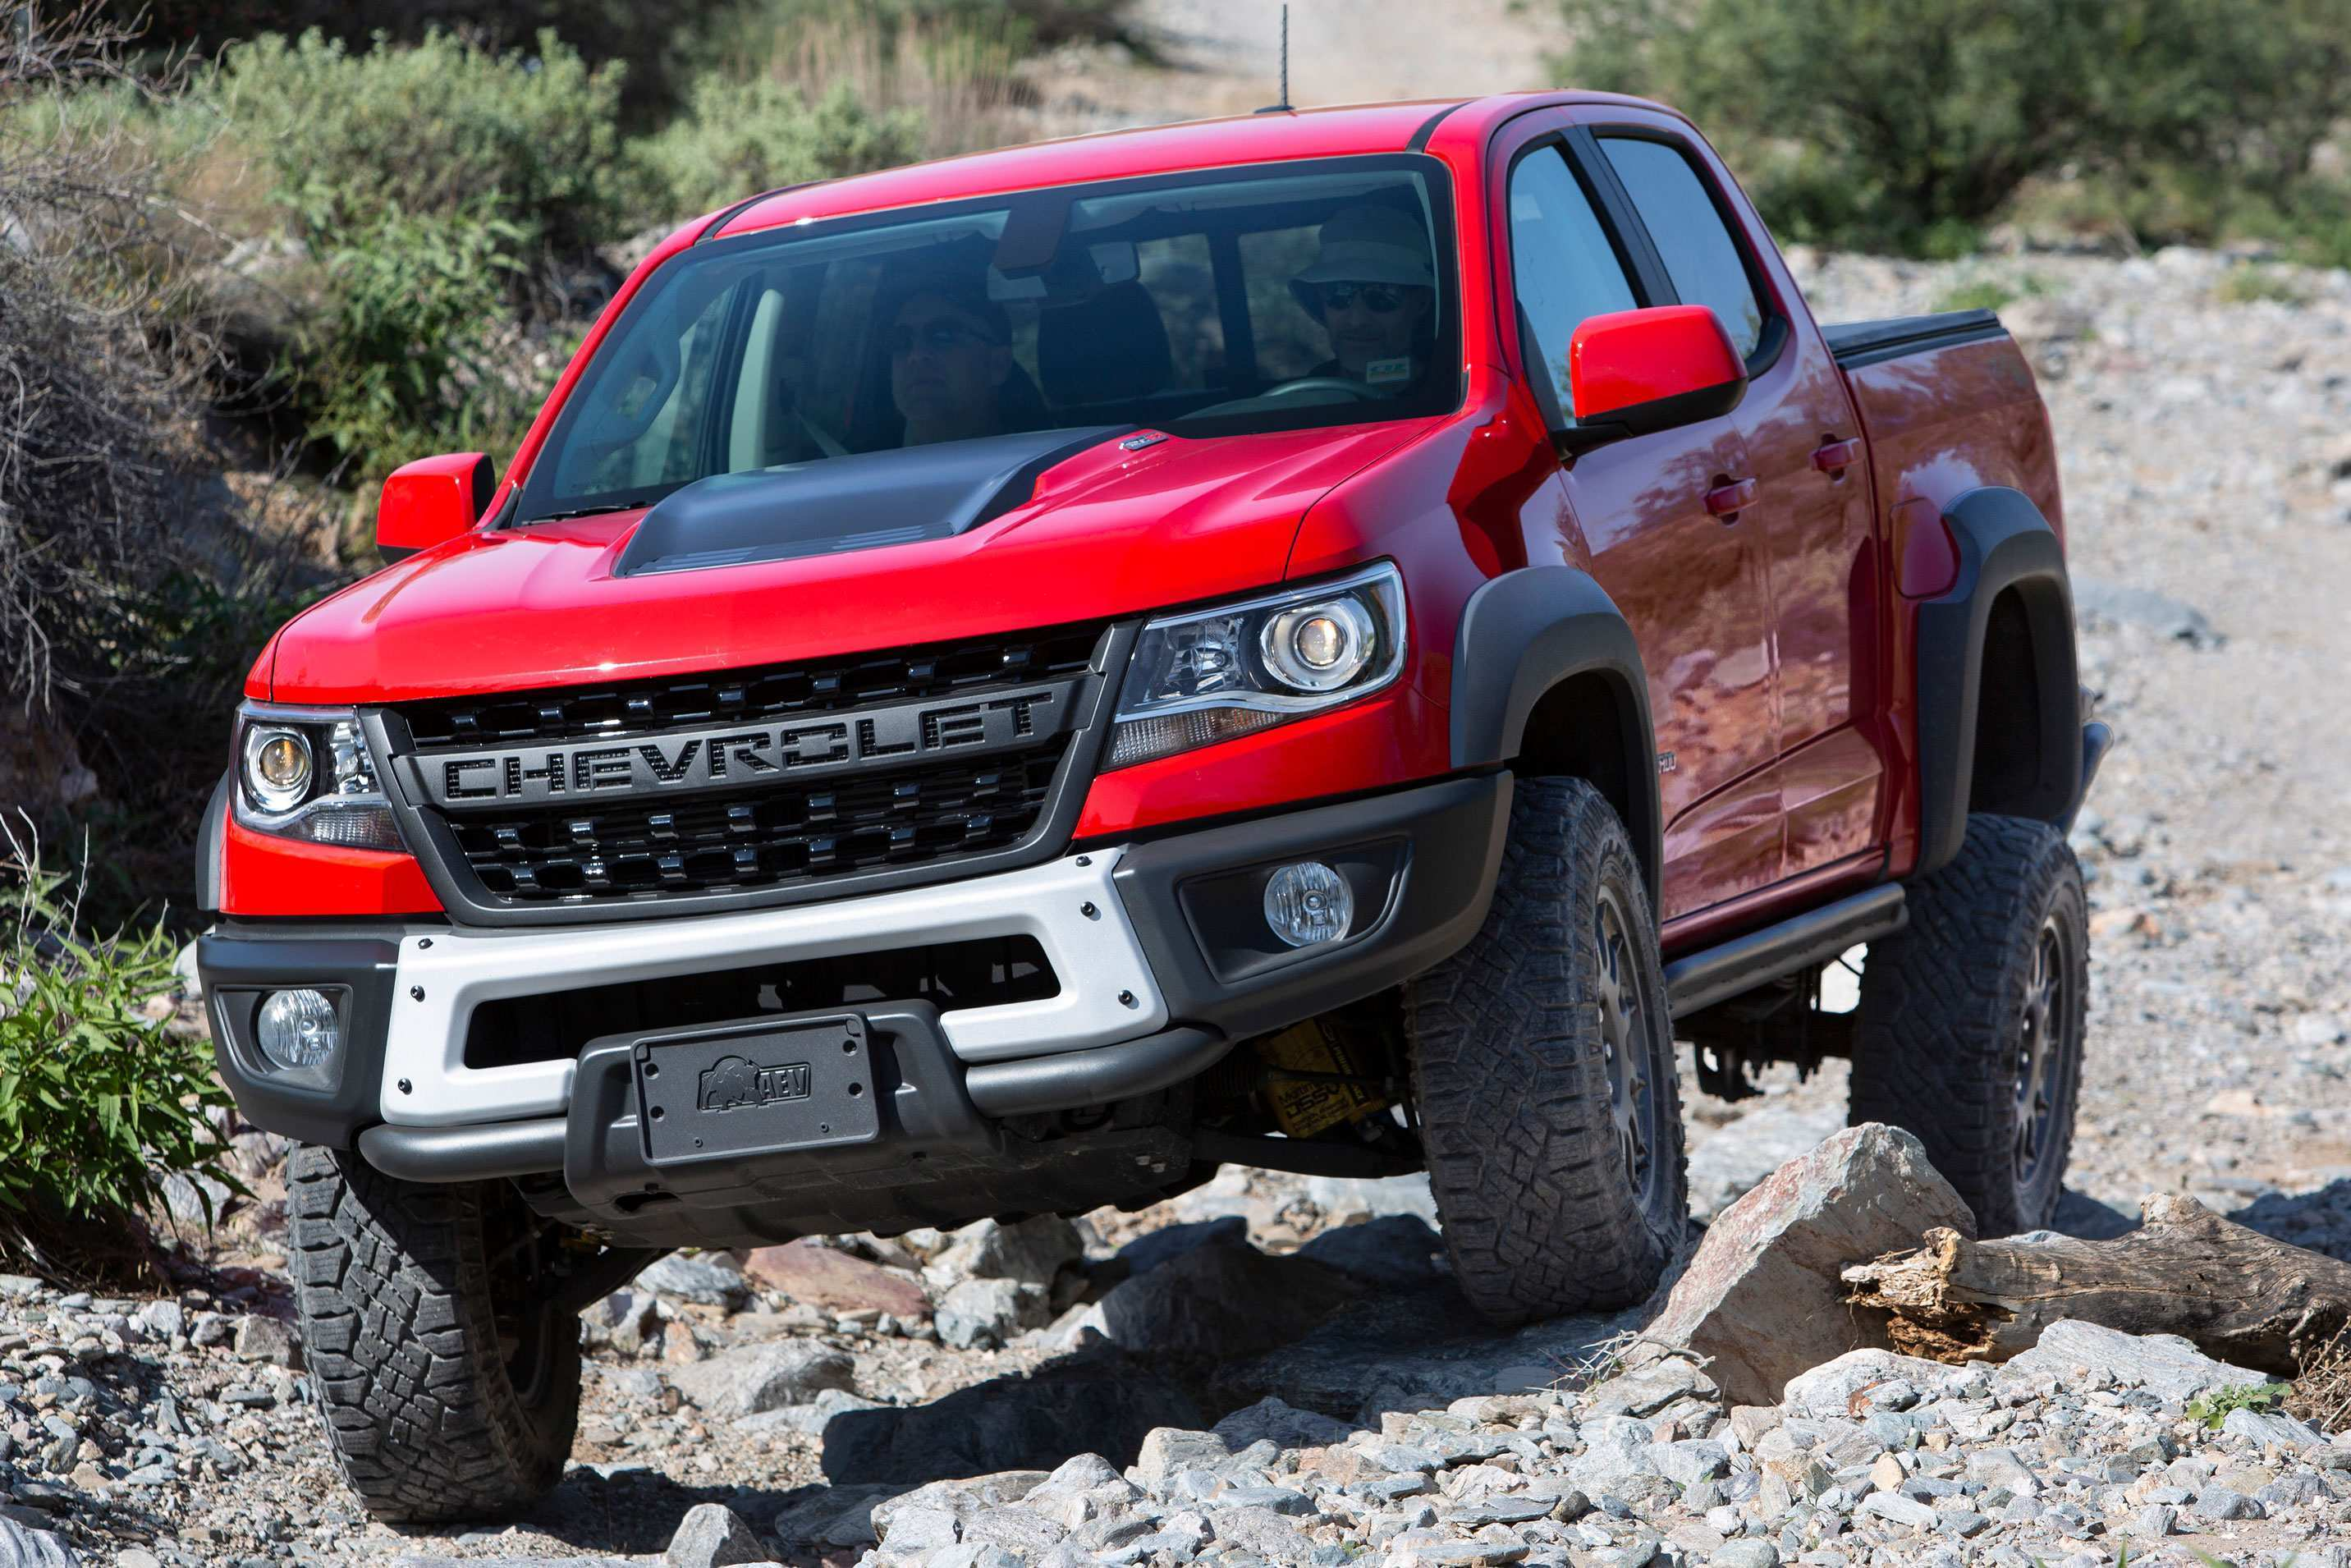 86 Great New Chevrolet Zr2 2019 First Drive Price Performance And Review Review with New Chevrolet Zr2 2019 First Drive Price Performance And Review